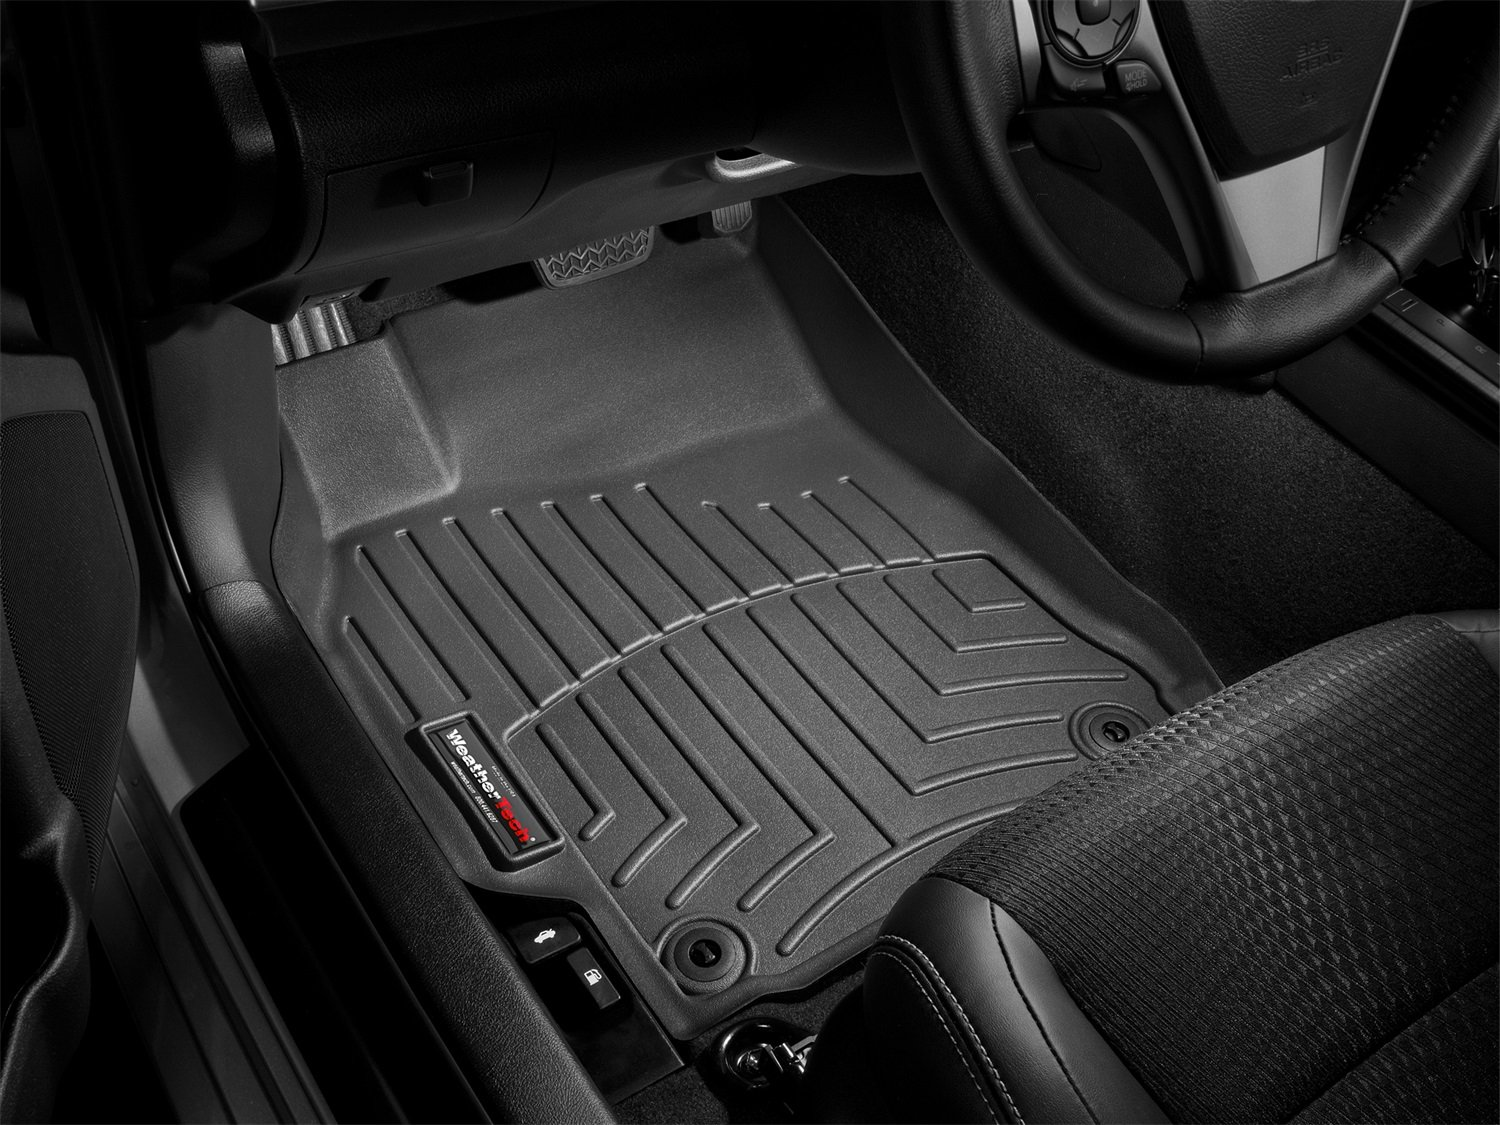 Weathertech floor mats alternative - Amazon Com Weathertech Custom Fit Front Floorliner For Toyota Rav4 Black Automotive